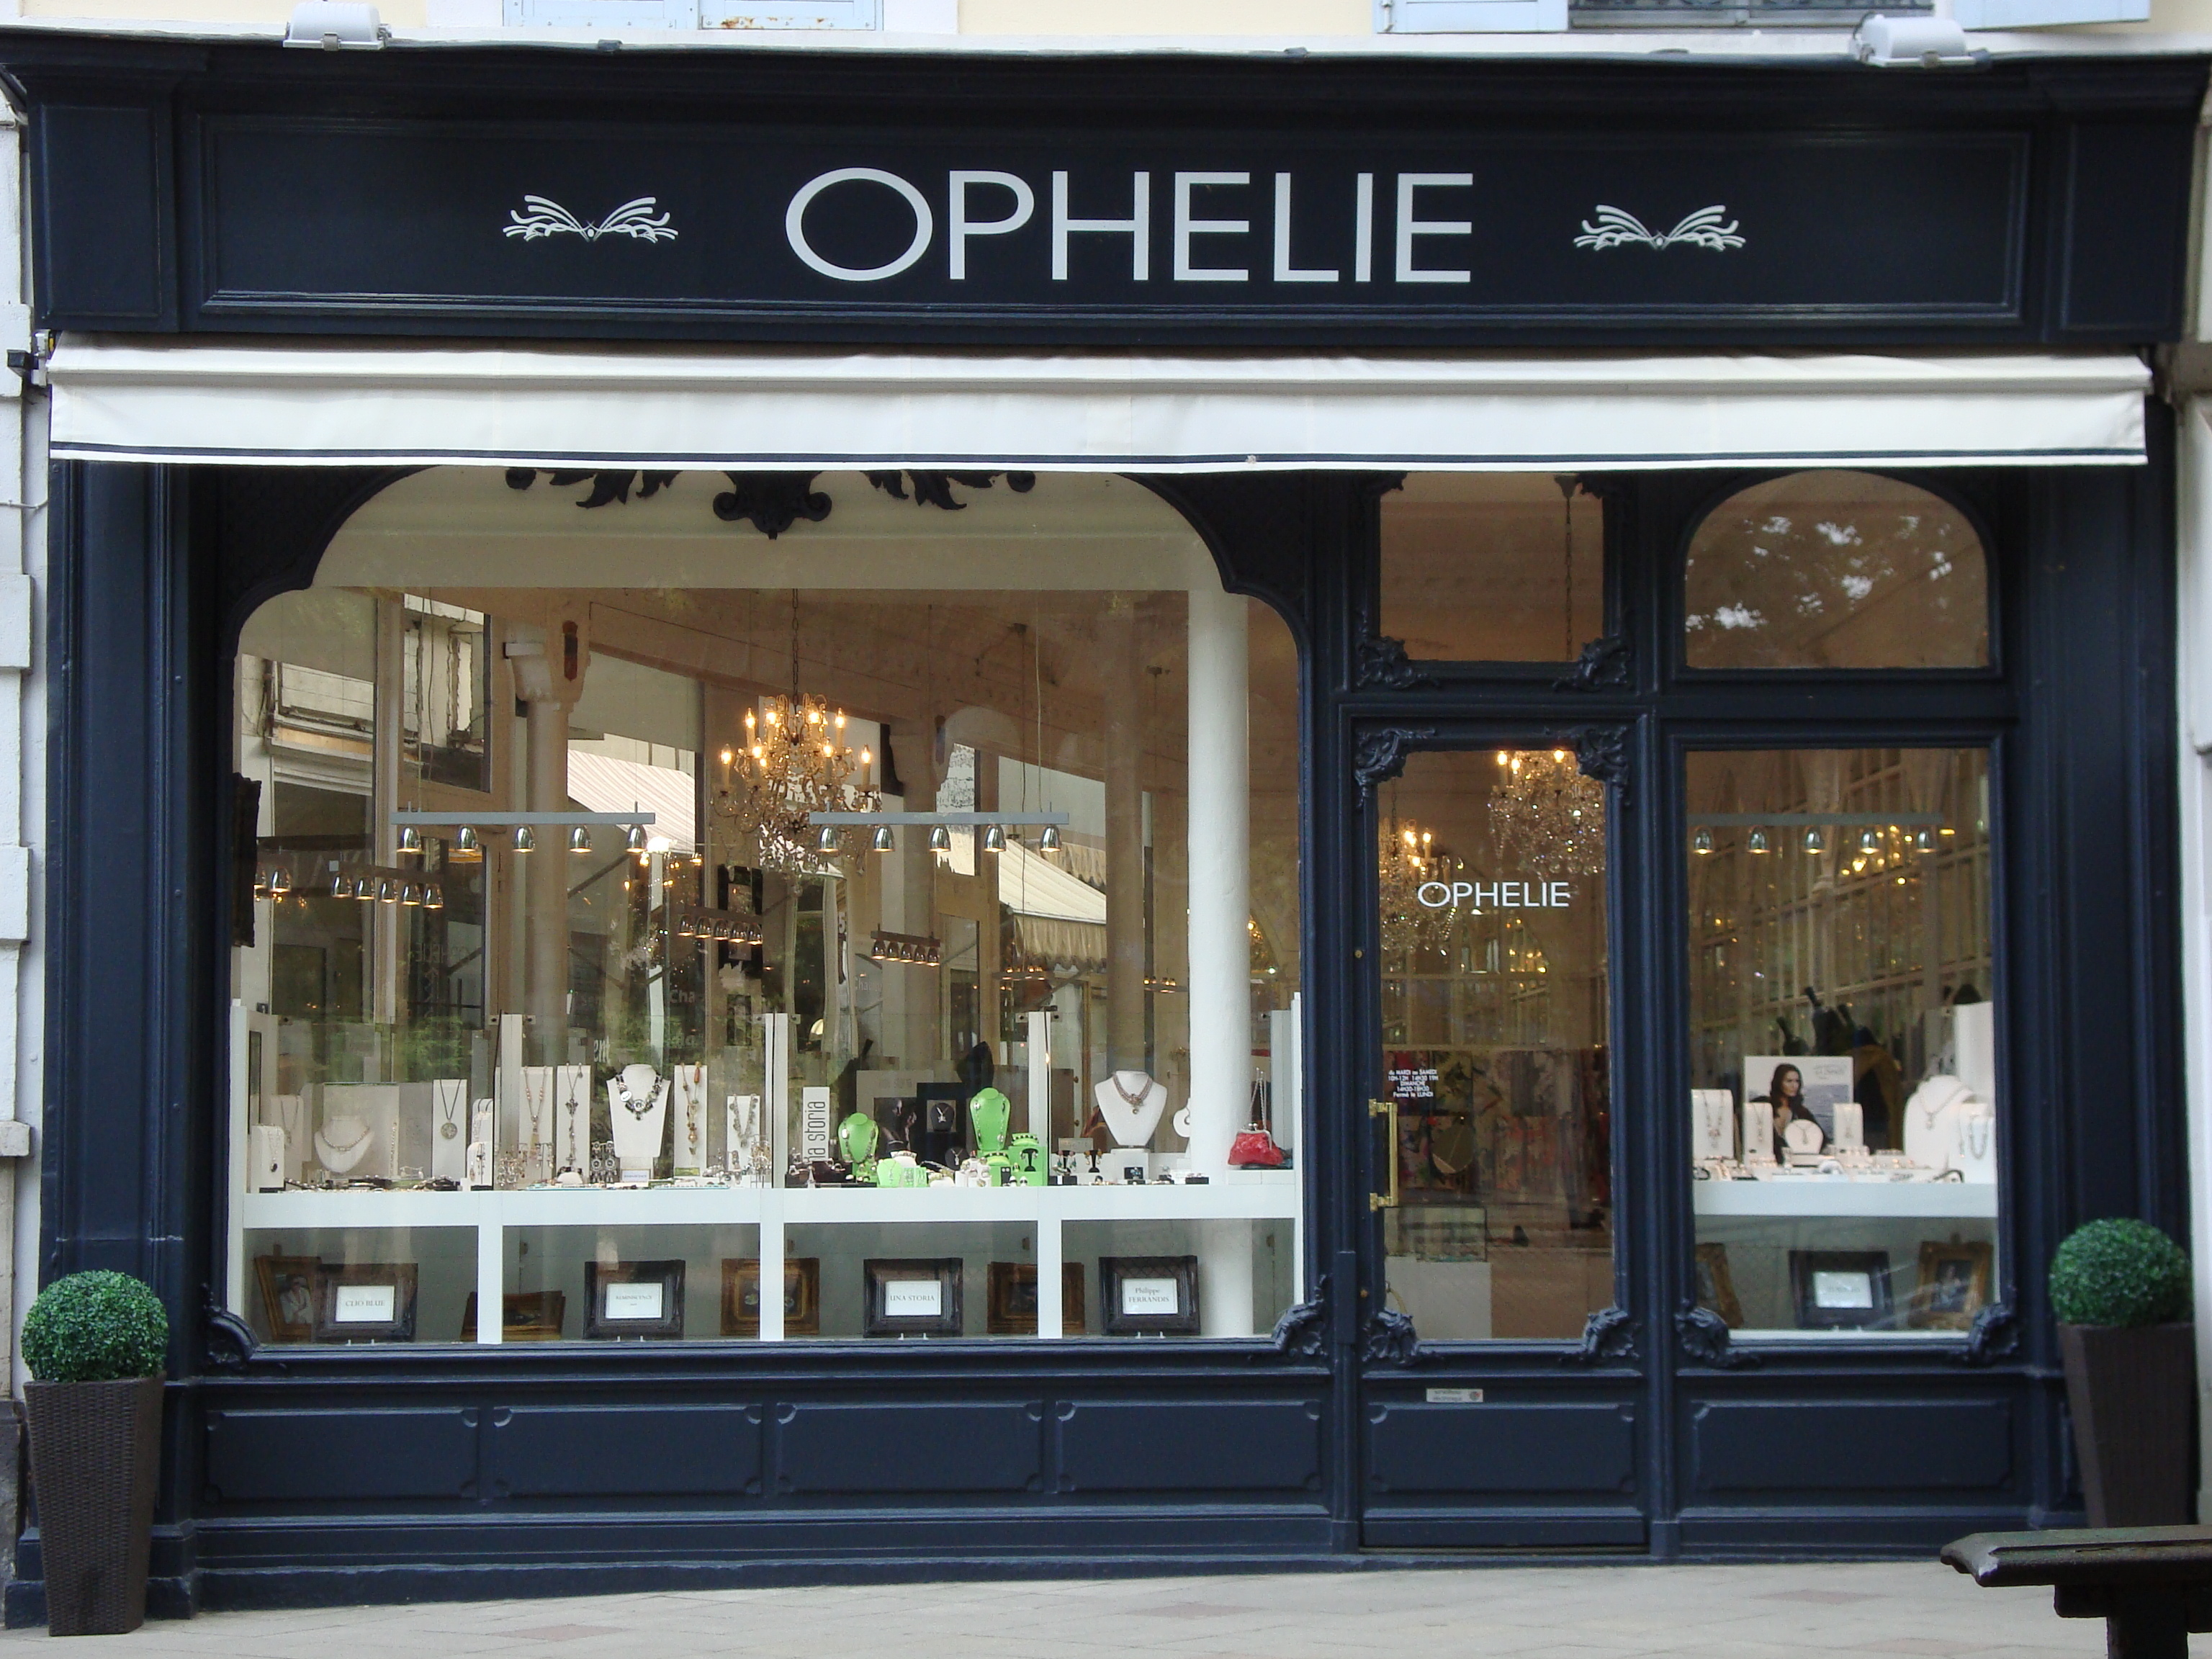 Galerie d'image - OPHELIE